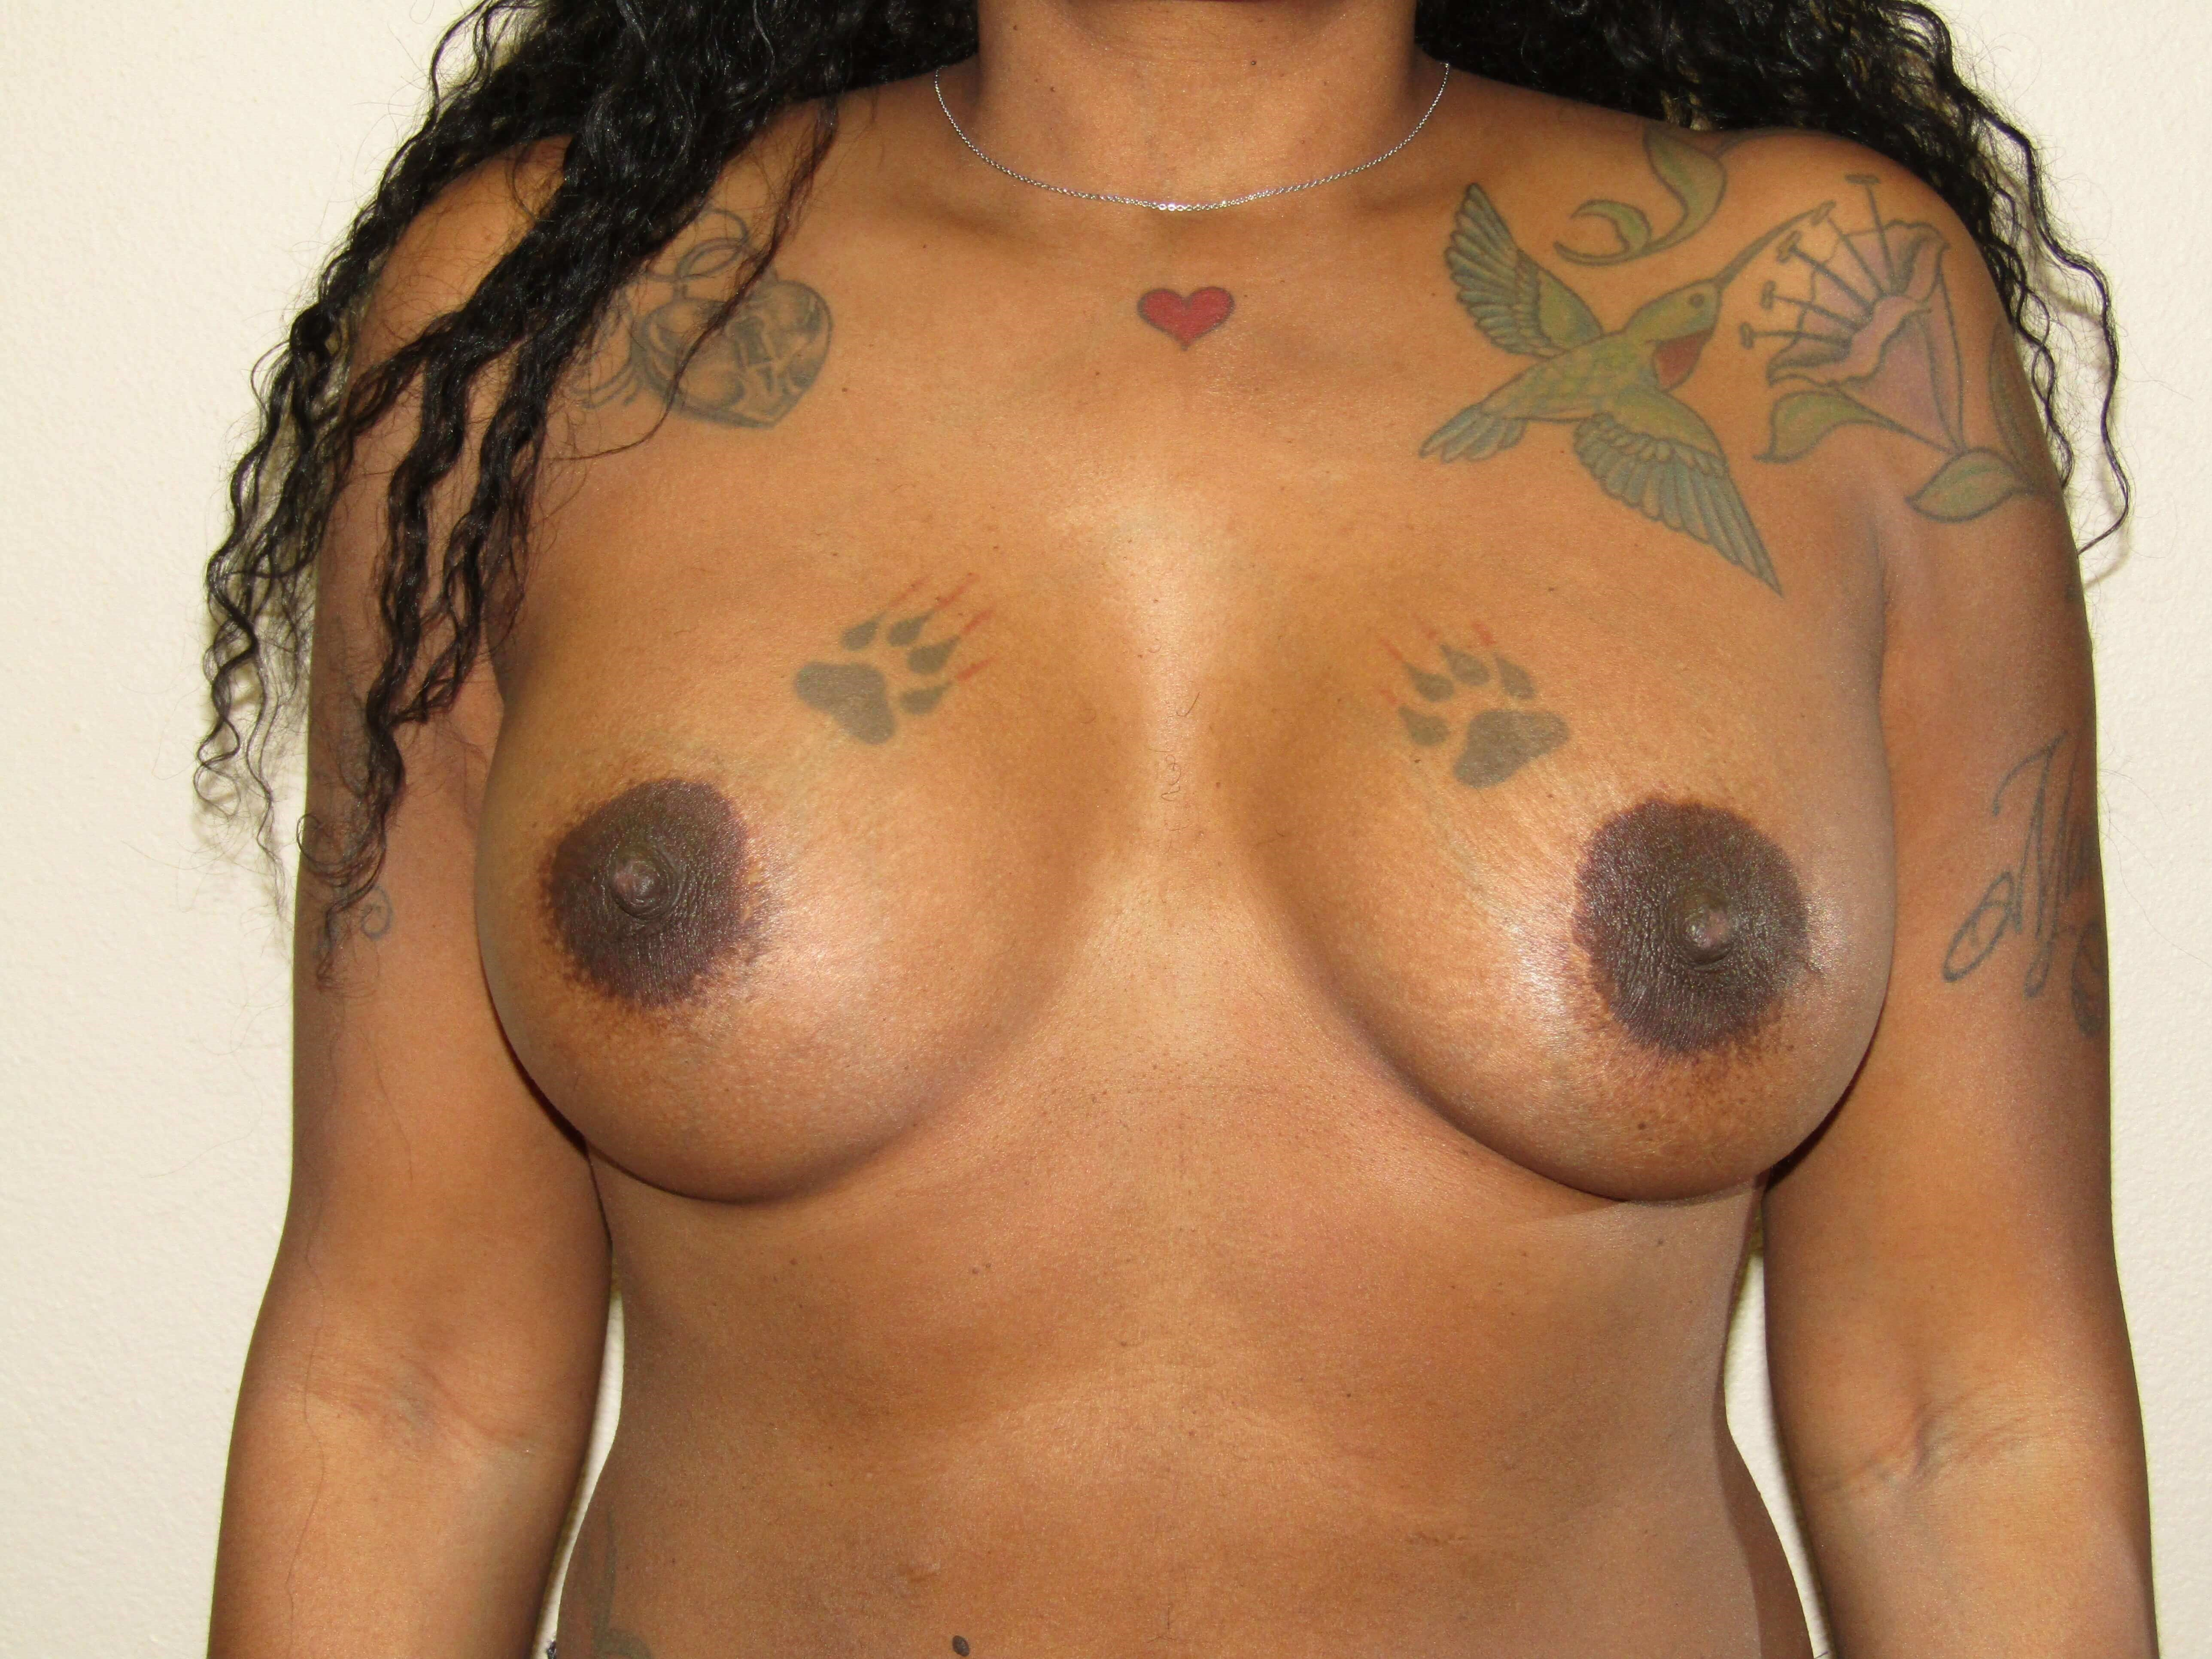 Breast Augmentation mini lift 2 1/2 years postop